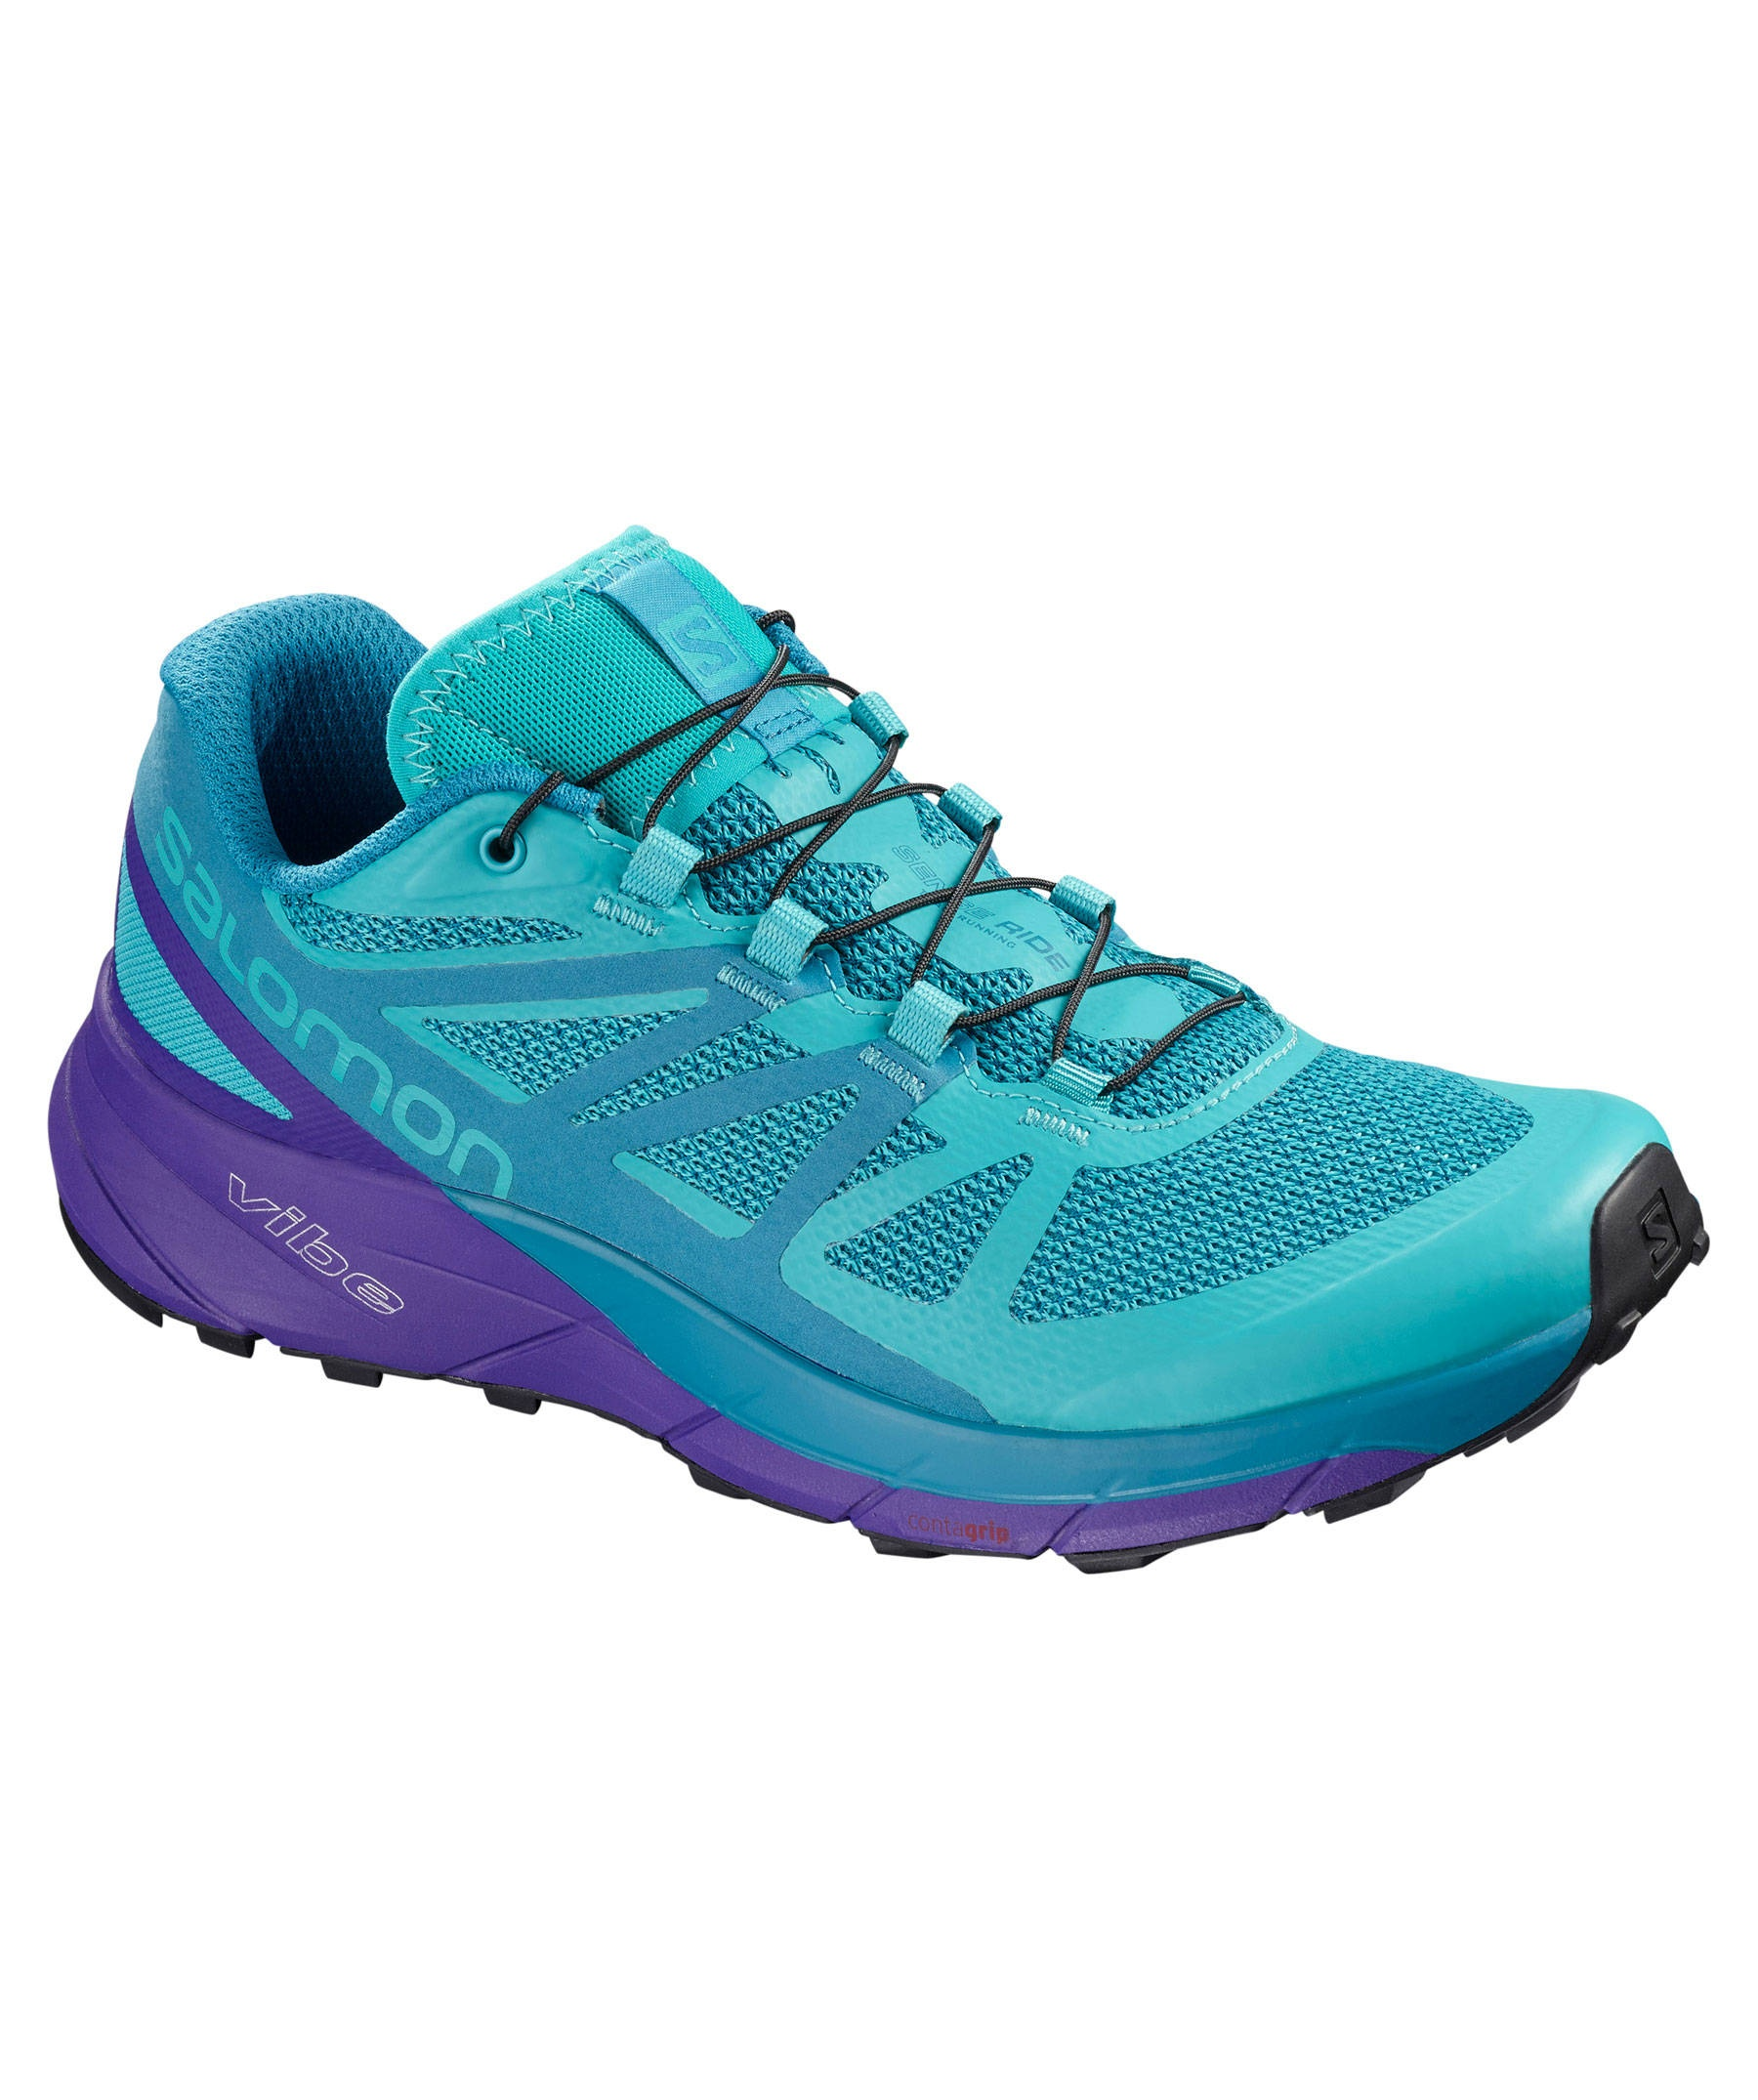 Salomon Damen Trailrunningschuhe